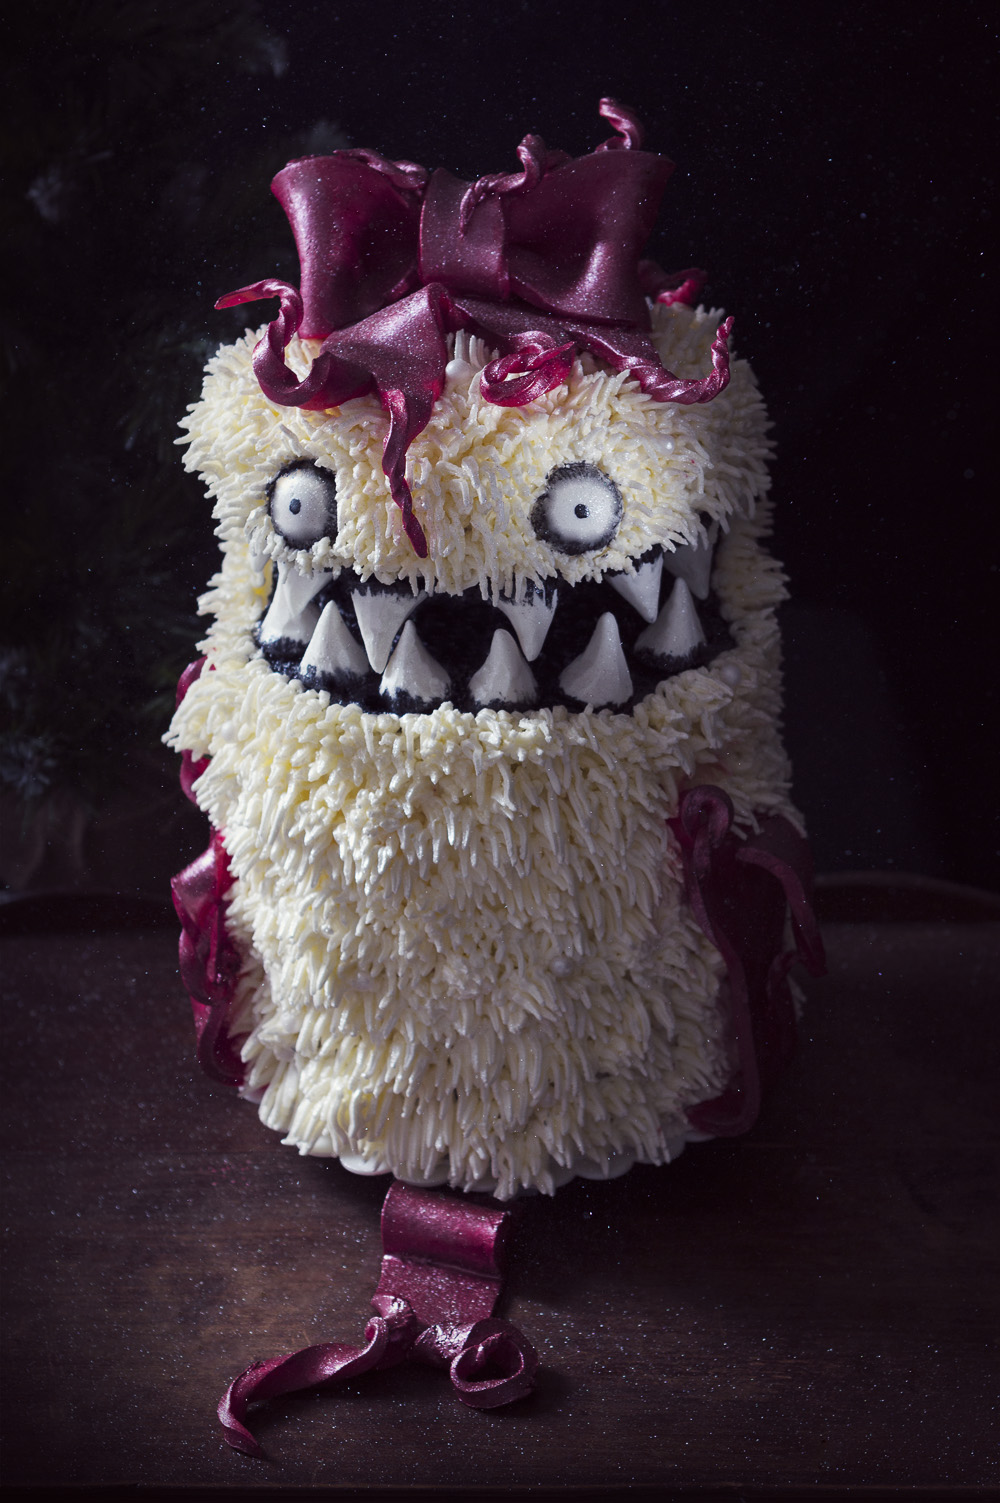 Gift Cake Monster - Studio de creation - Qui a vole les tartes